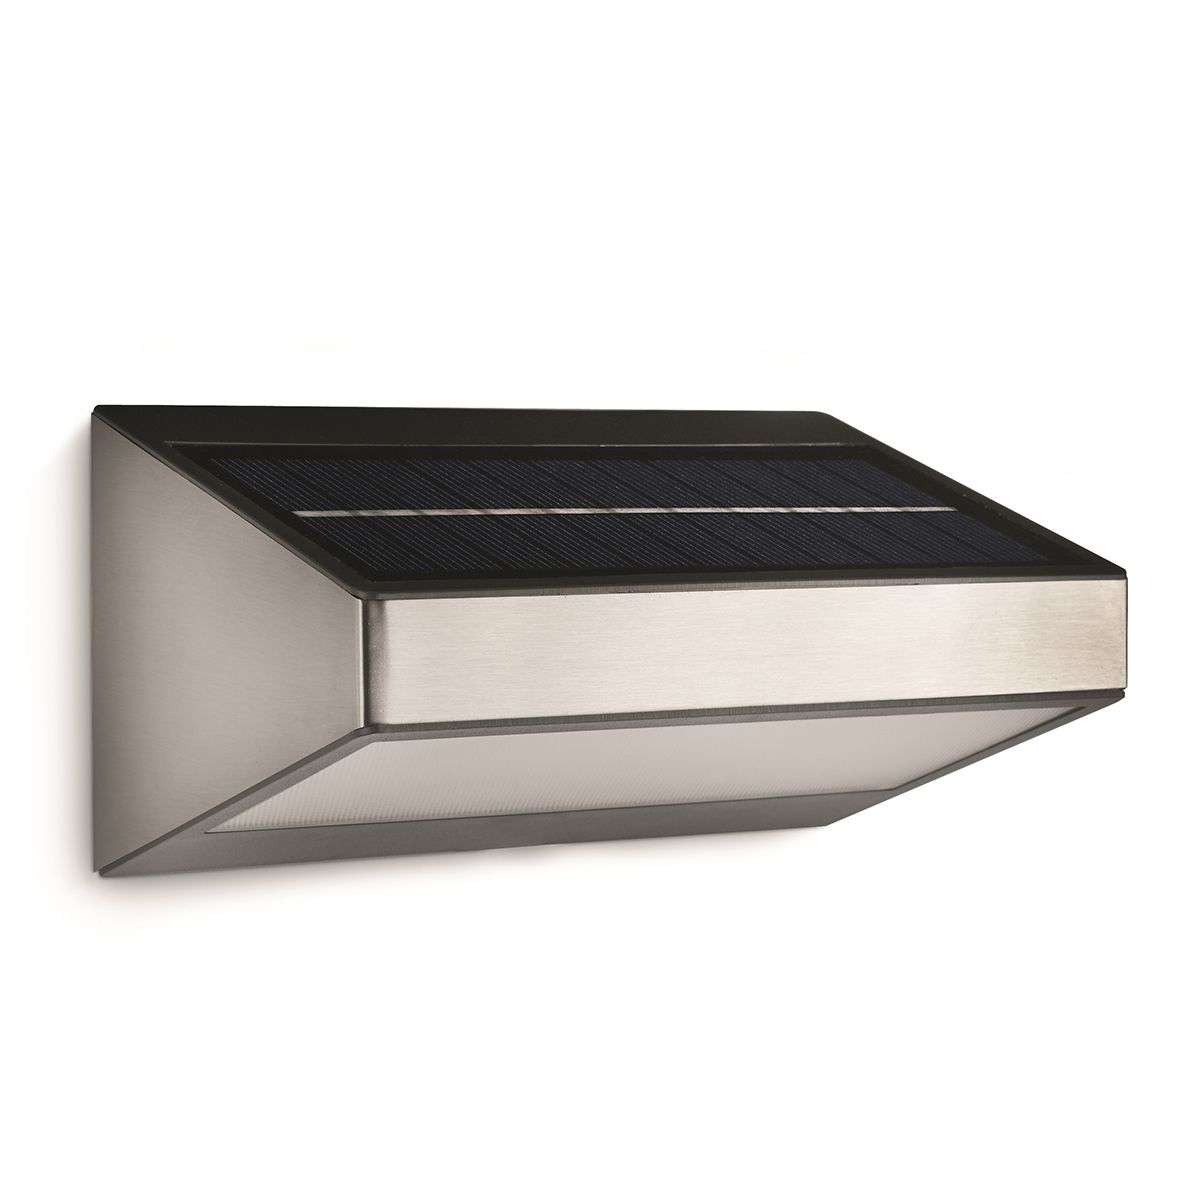 Greenhouse led solar outside wall light lights greenhouse led solar outside wall light mozeypictures Gallery